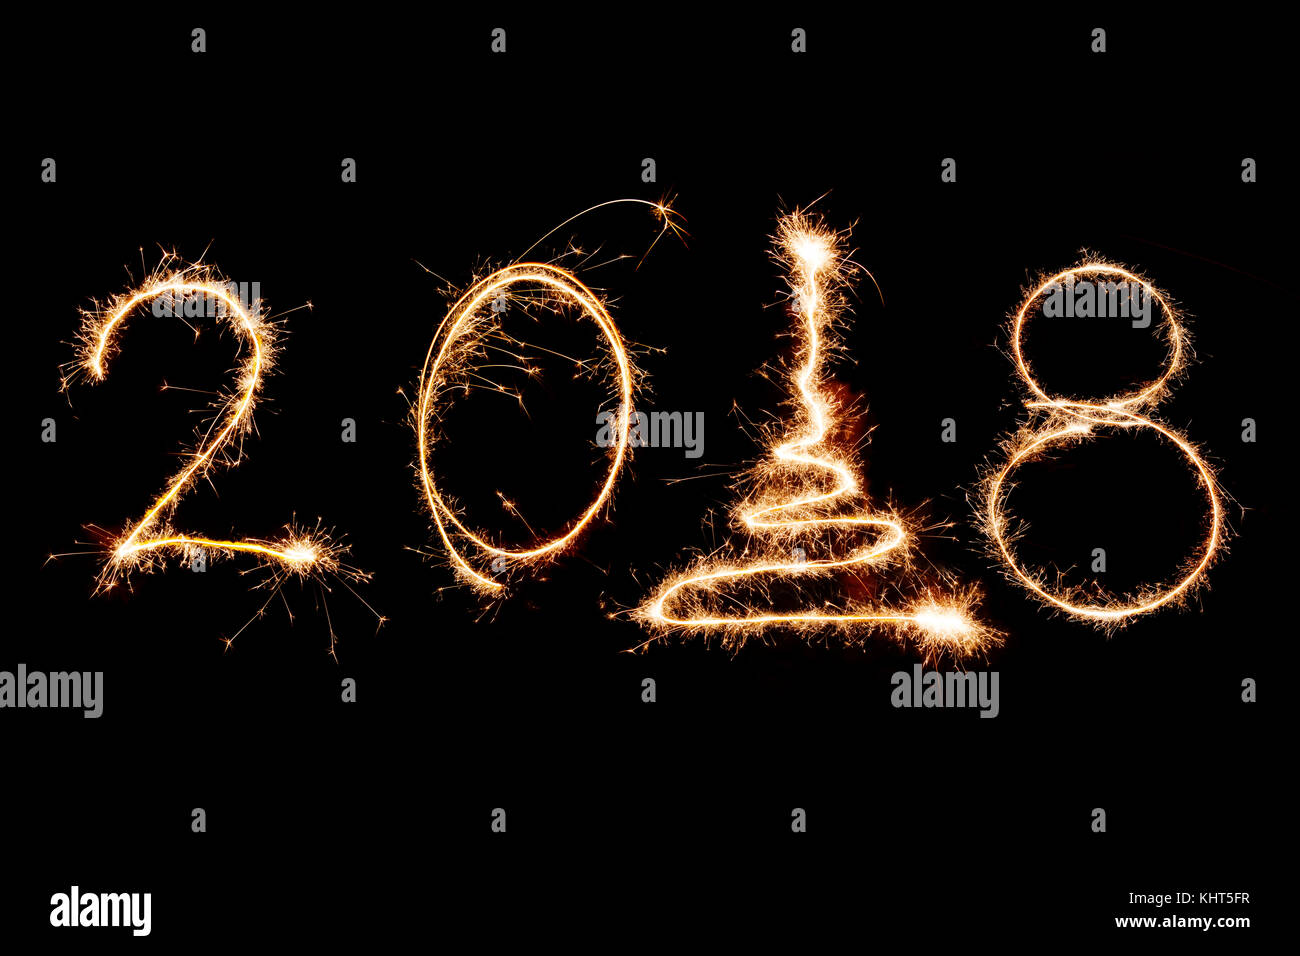 2018 written with Sparkle firework on black background, happy new year 2018 concept. - Stock Image